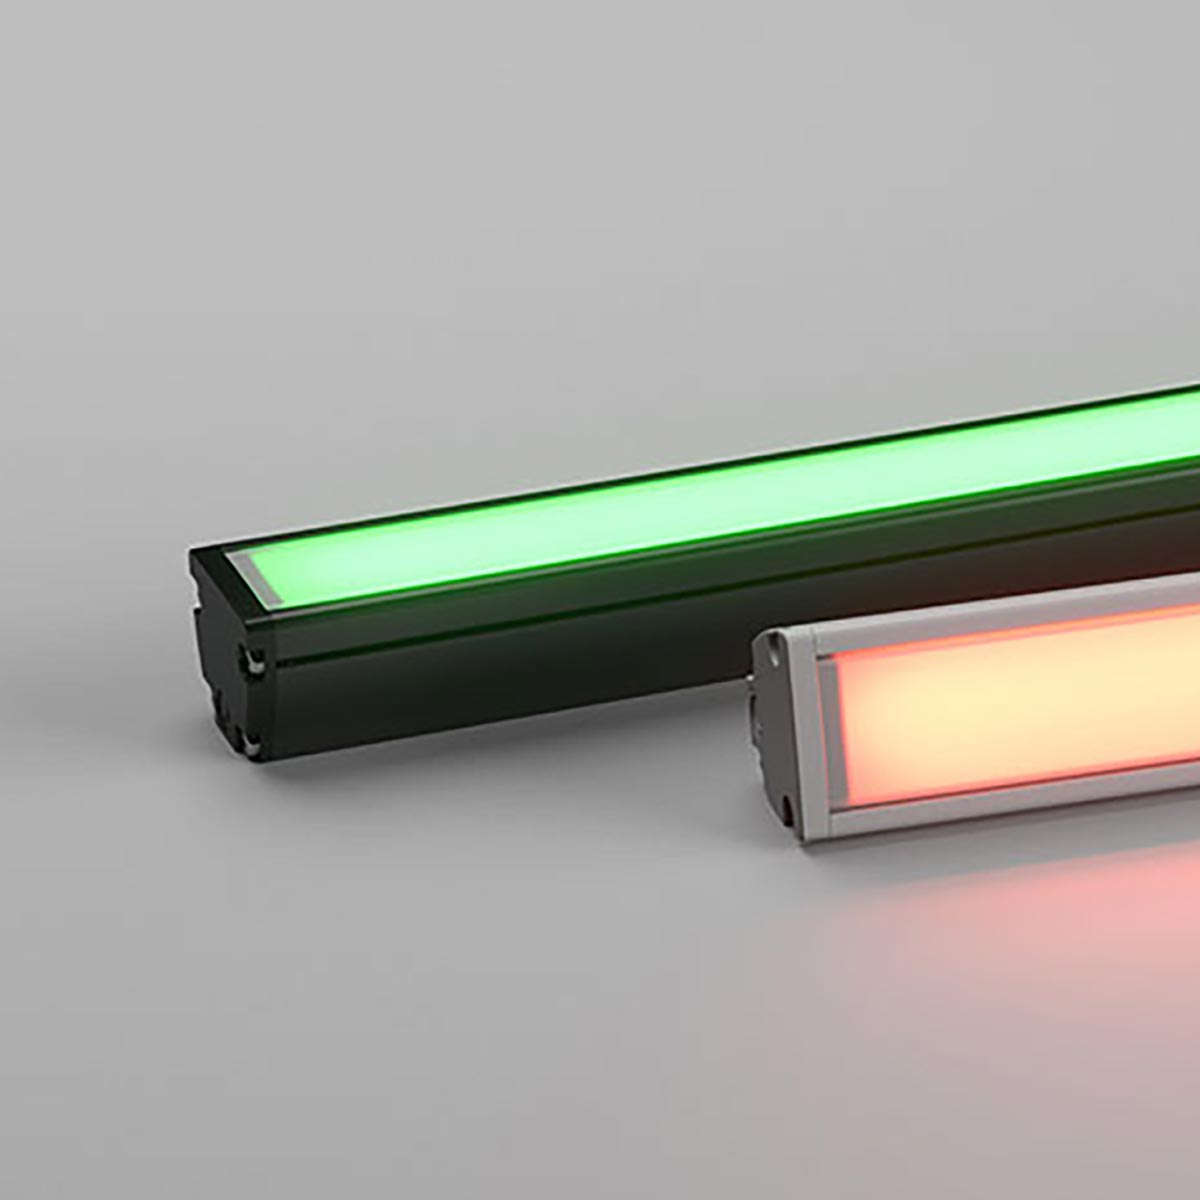 Max Mini RGBW - Homogeneous Colour Changing (RGBW) Linear Luminaire 40W